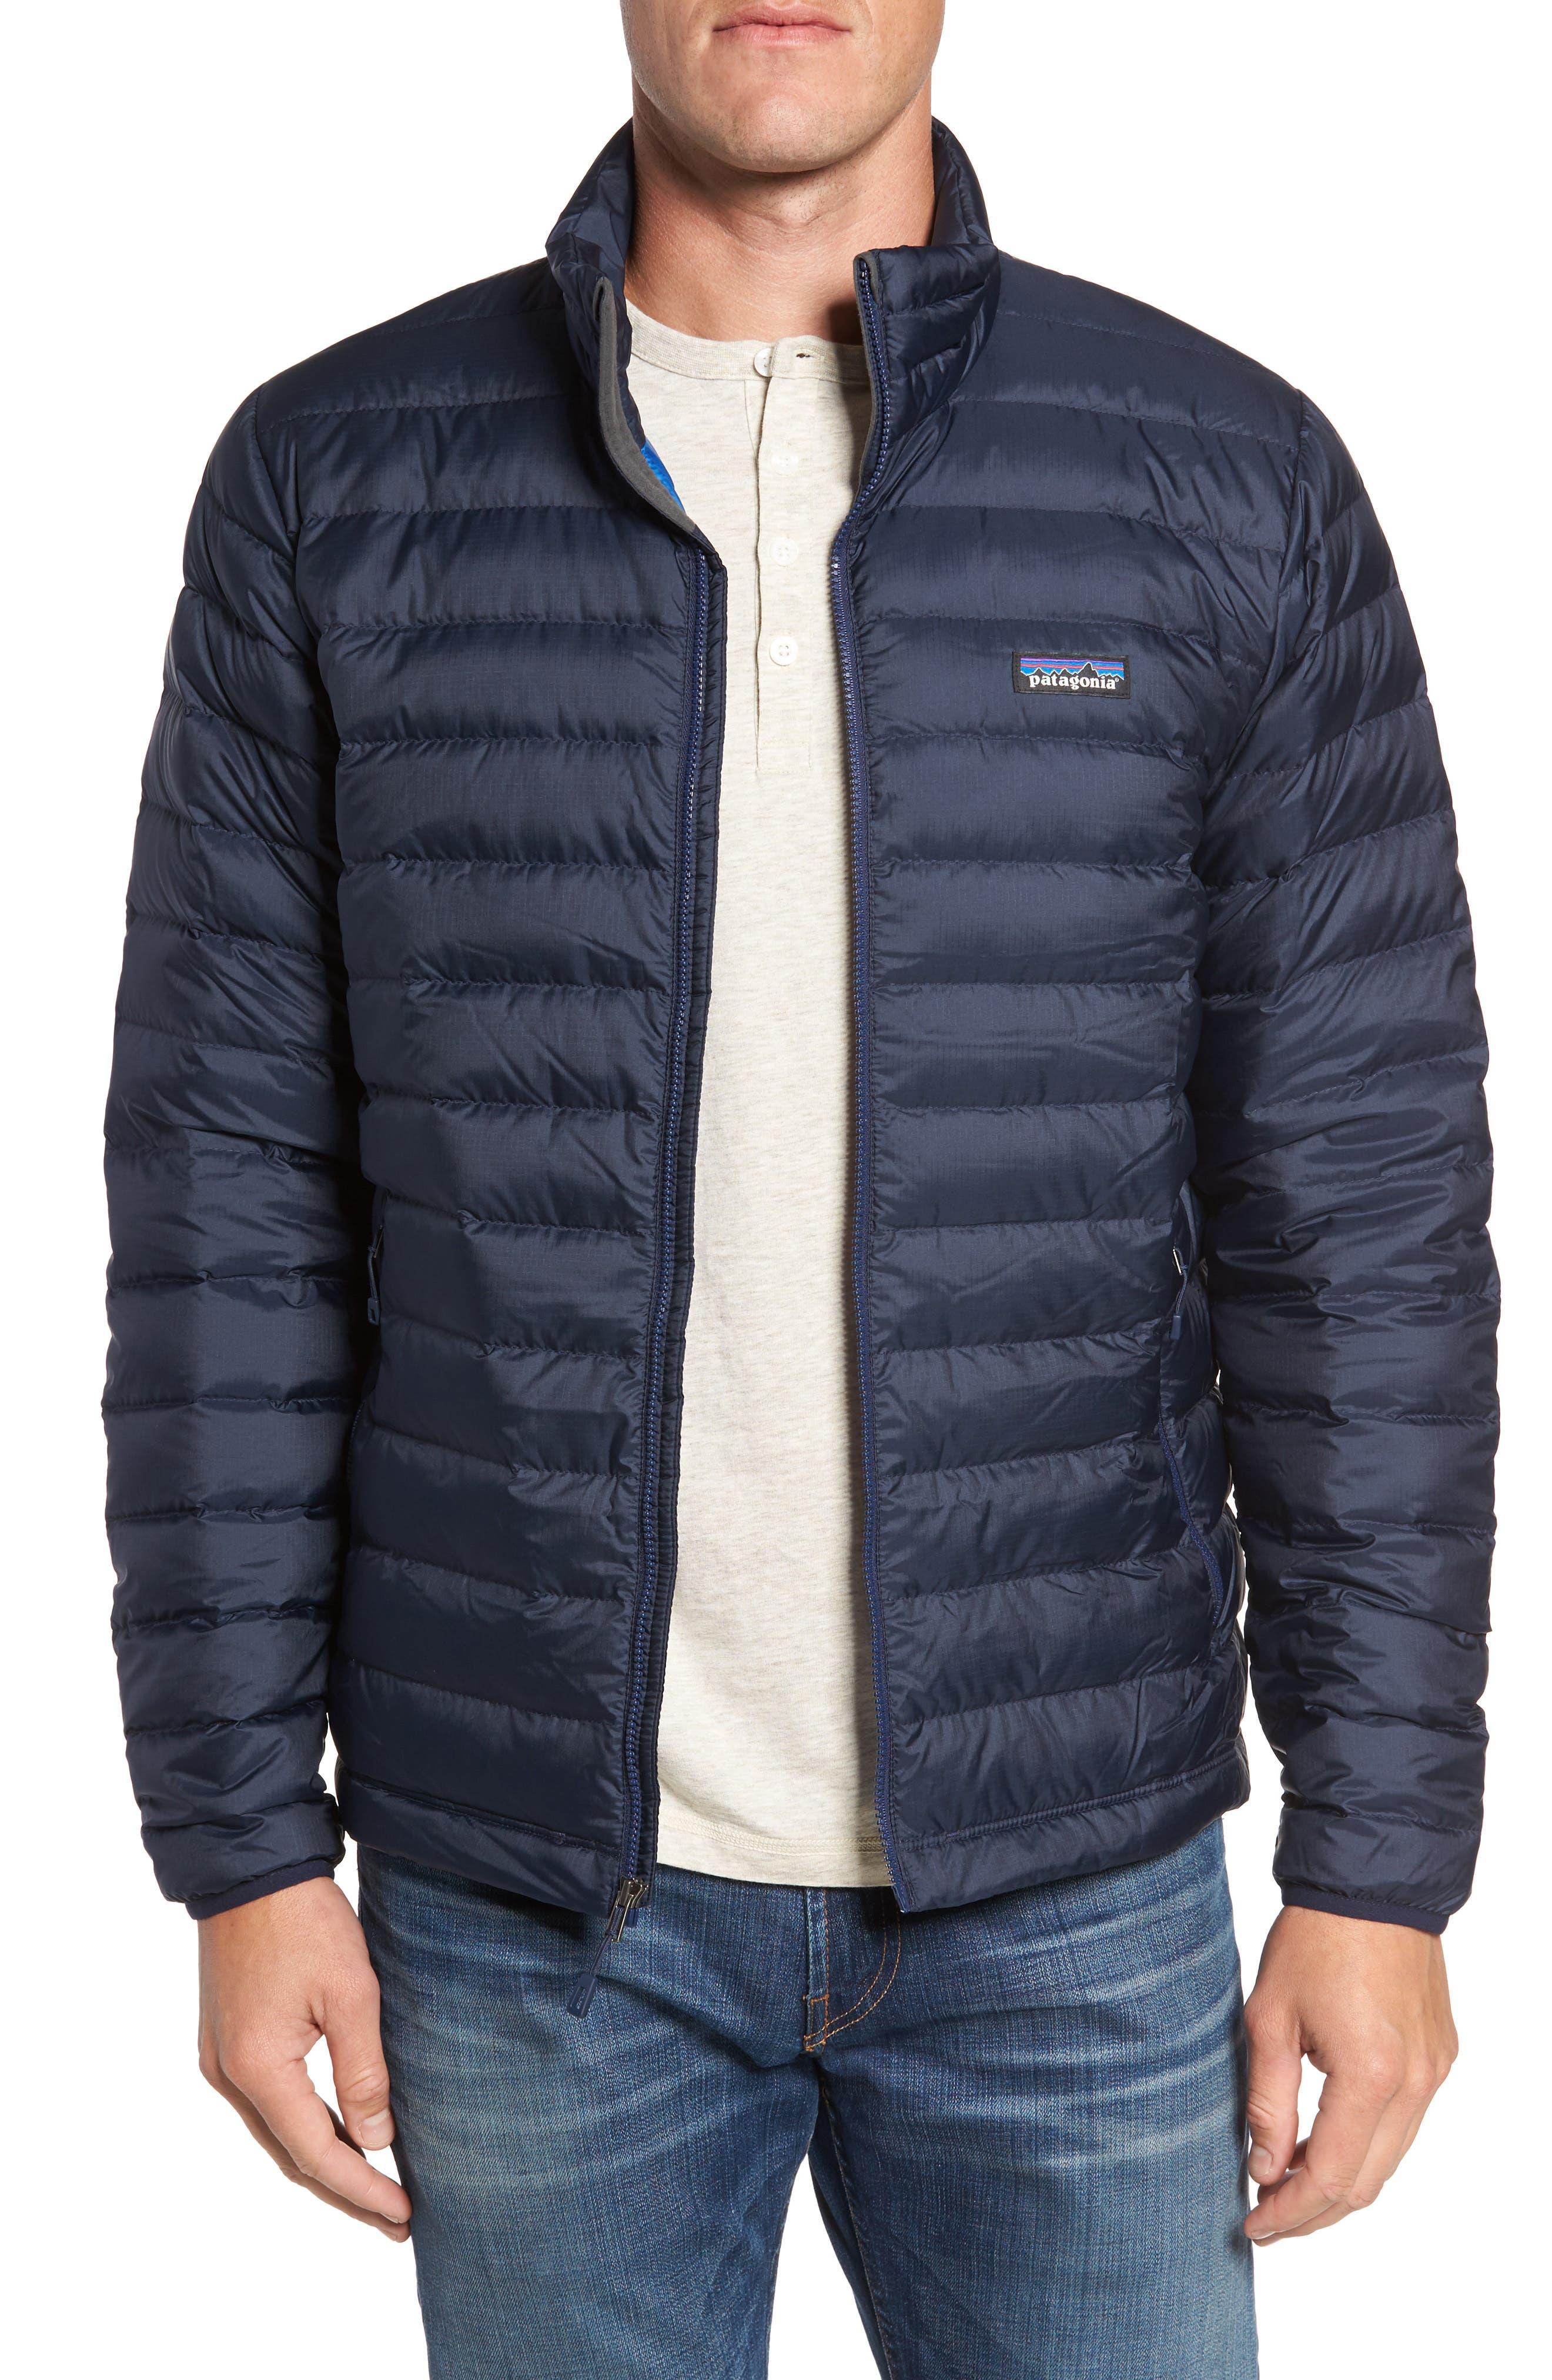 Alternate Image 1 Selected - Patagonia Water Repellent Down Jacket